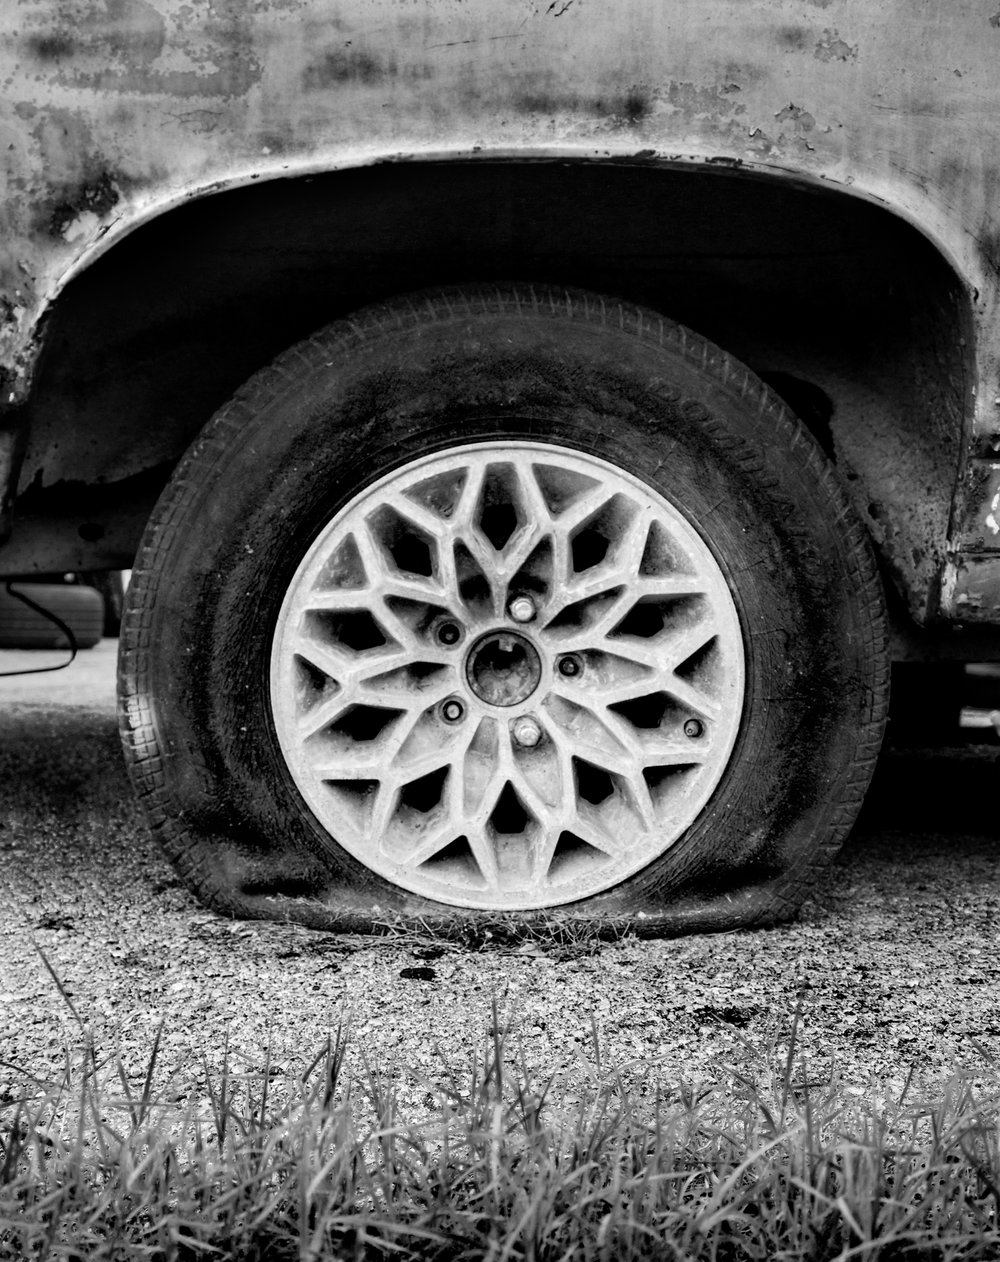 Wheeldecay2(BlackandWhite)WEBSITE.jpg